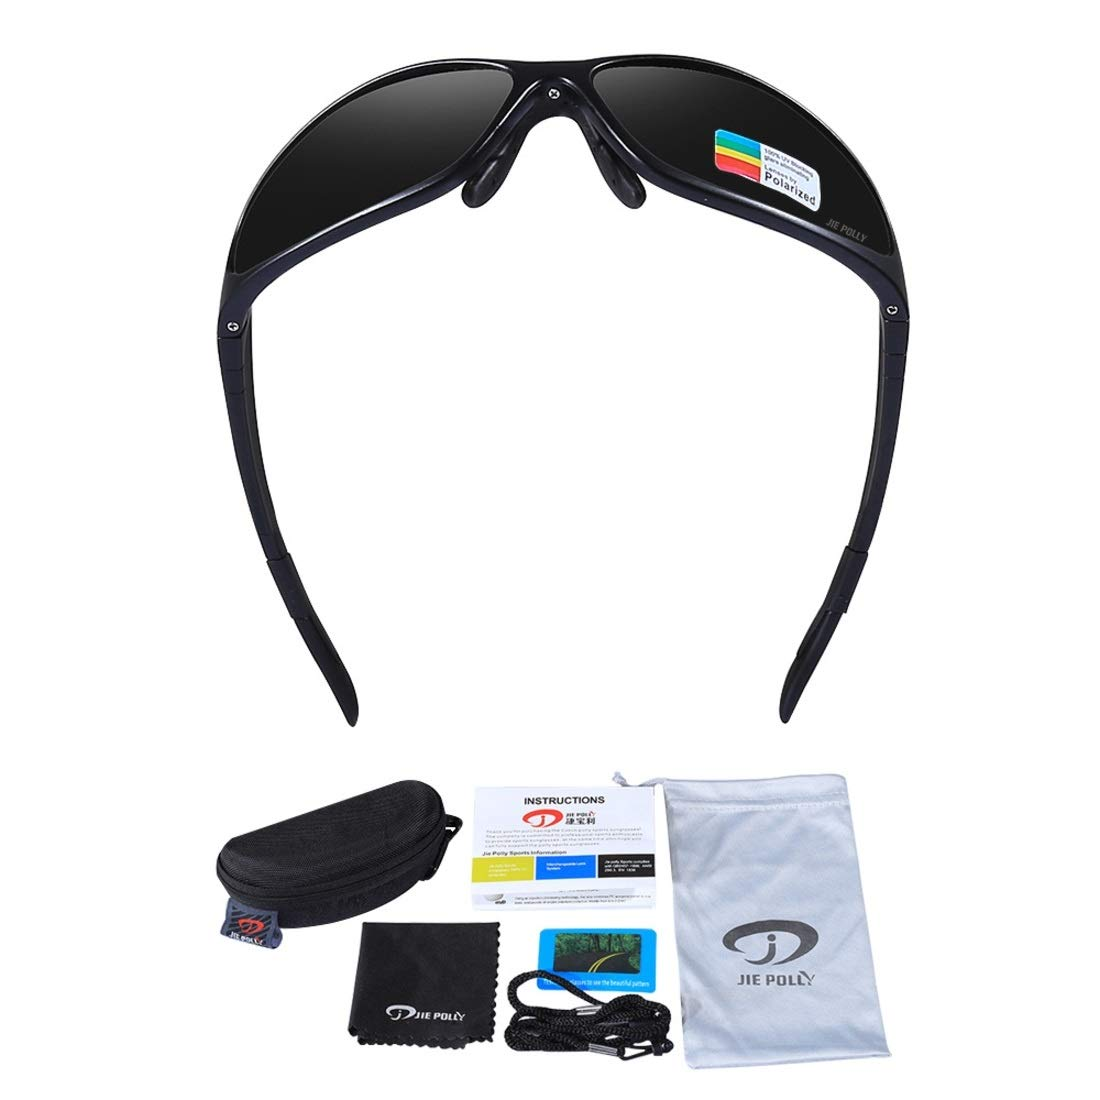 BAOYIT Riding Glasses Outdoor Sports Polarized Glasses Mountain Bike Riding Goggles for Women Men (Color : B) by BAOYIT